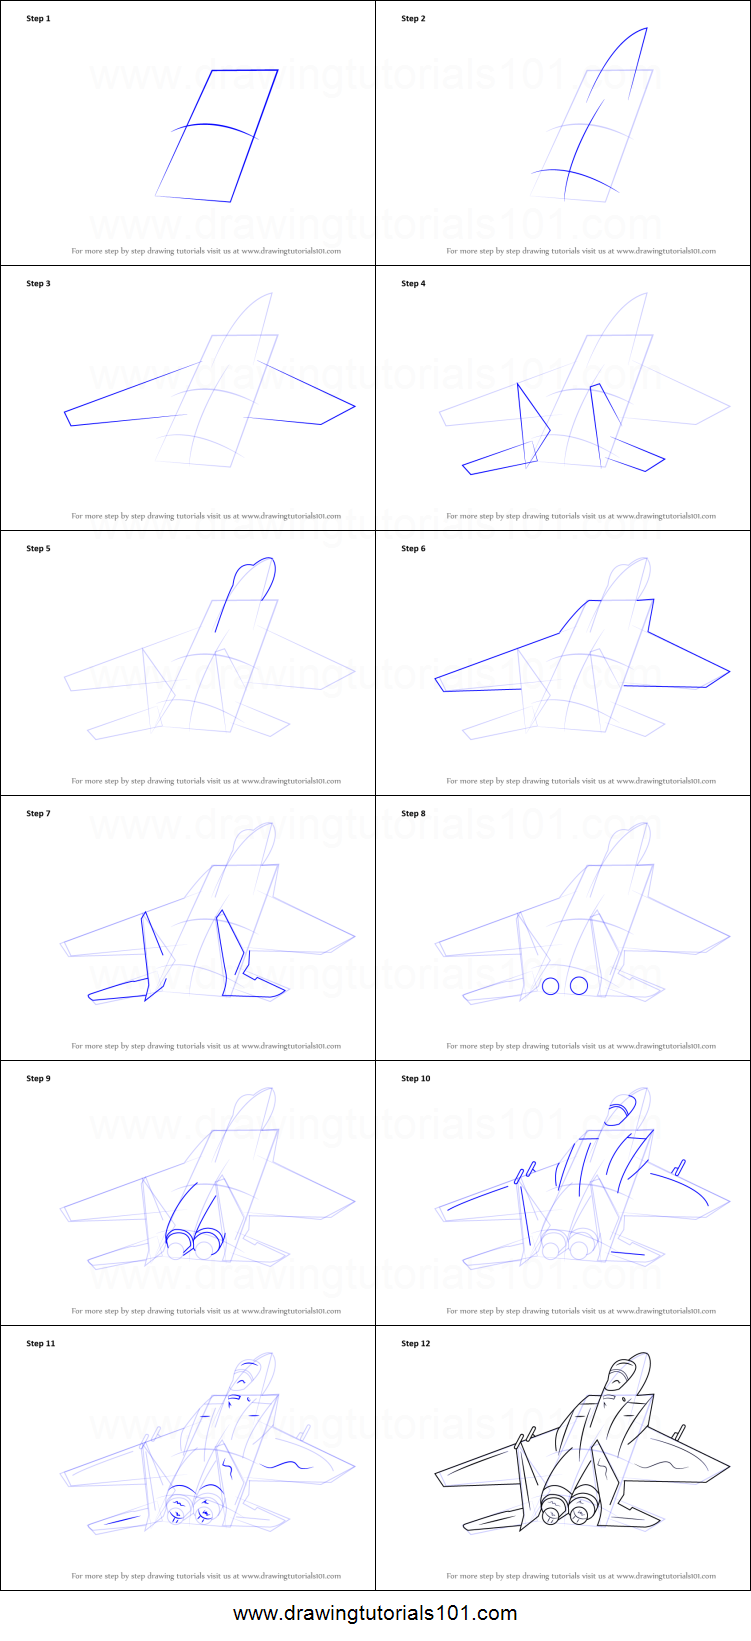 how to draw fighter jet aircraft